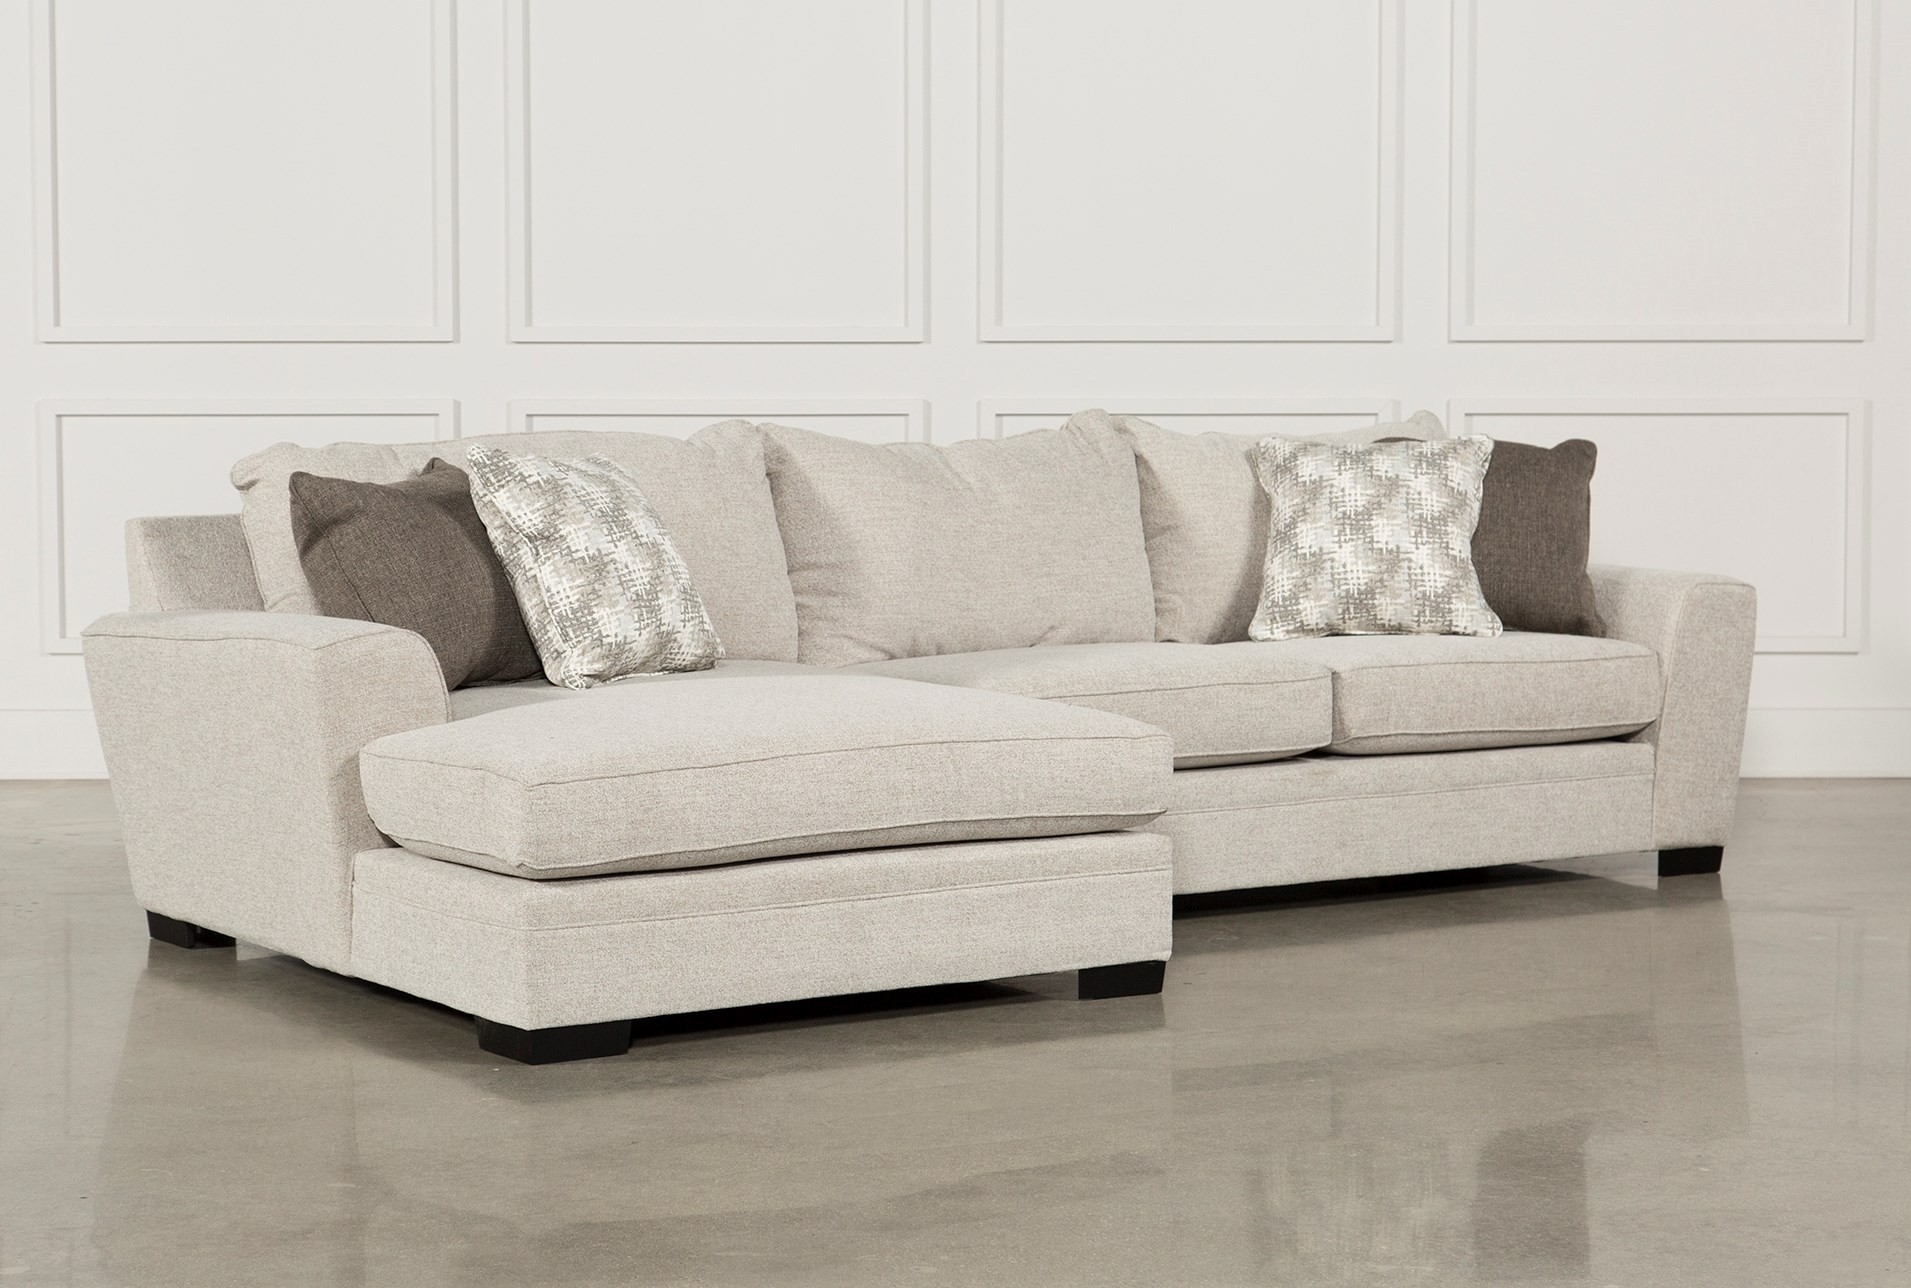 Living Spaces Sectional Couches Alder 4 Piece 89893 2 Jpg W 446 H With Regard To Alder 4 Piece Sectionals (Image 19 of 25)